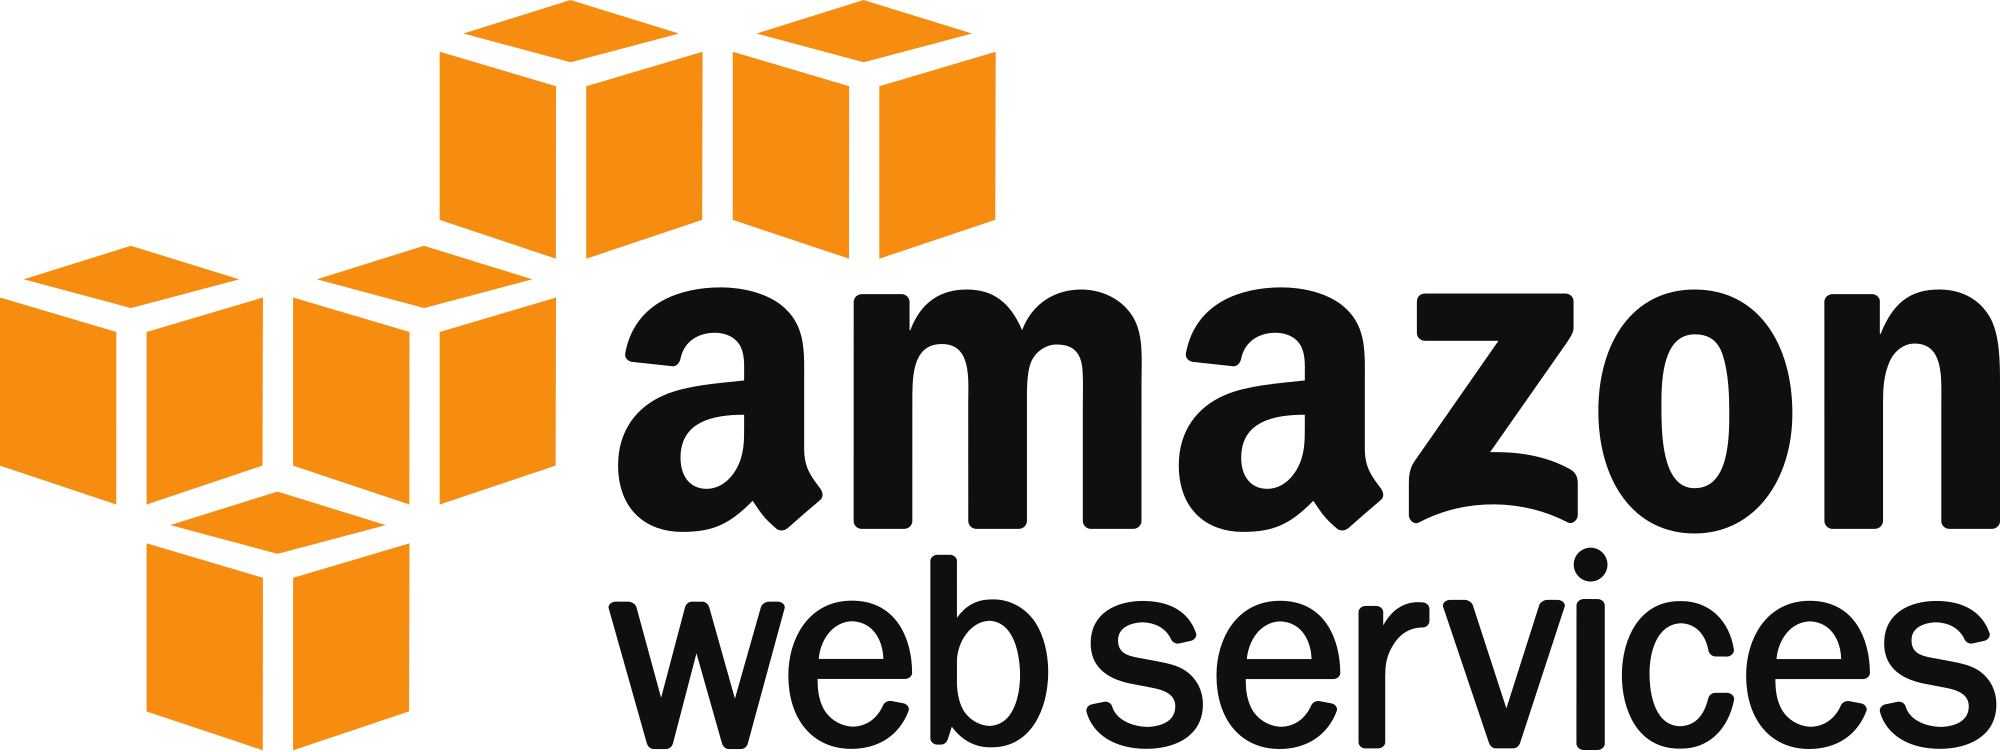 Supported Big Data Platforms: Amazon Web Services (AWS)